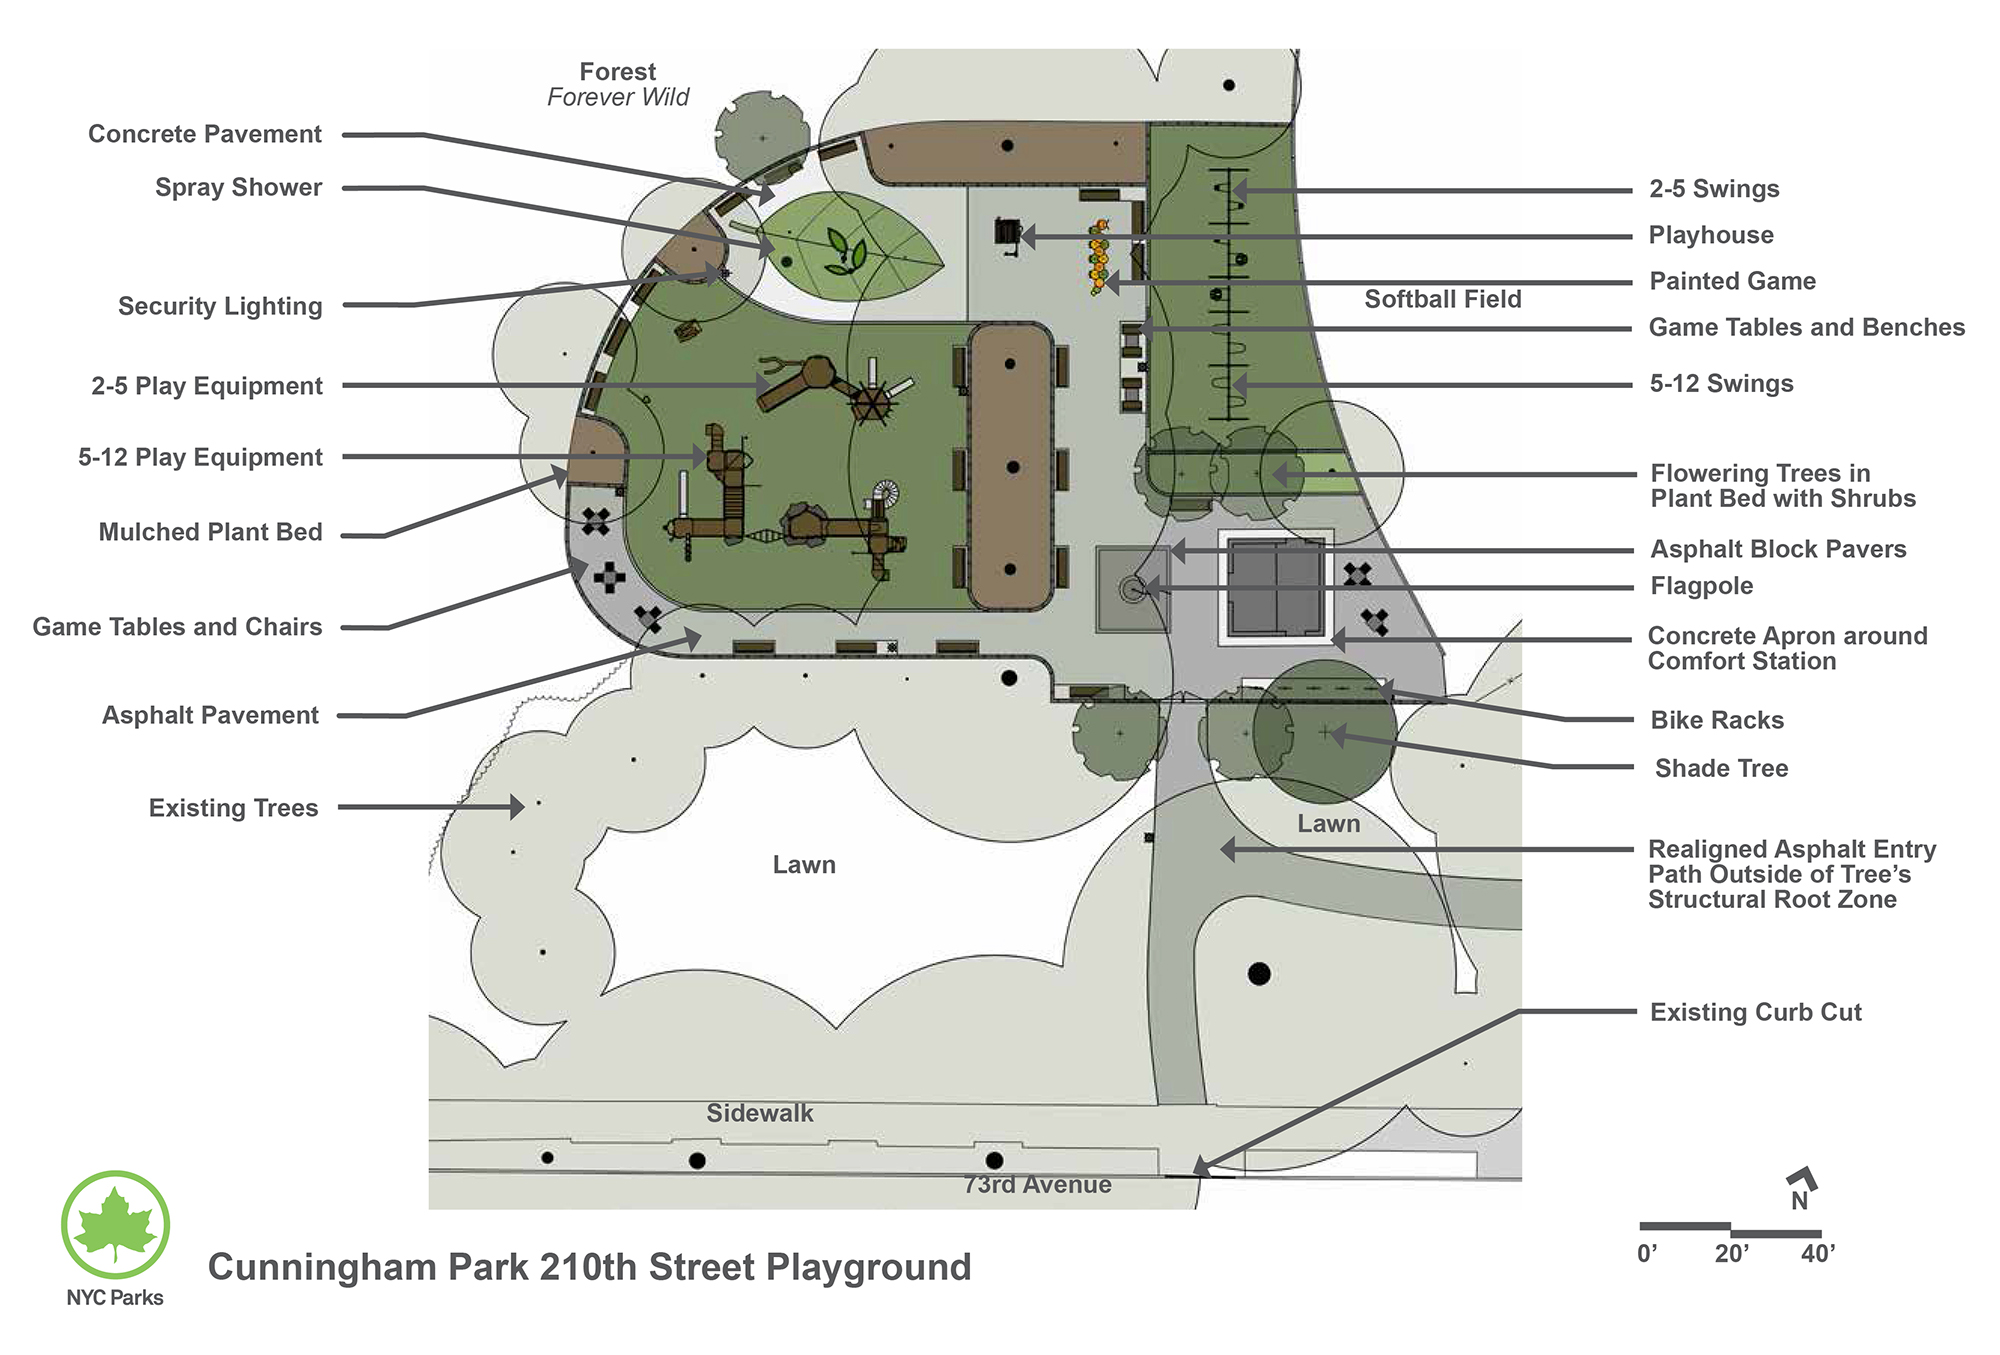 Design of Cunningham Park 210th Street Playground Reconstruction